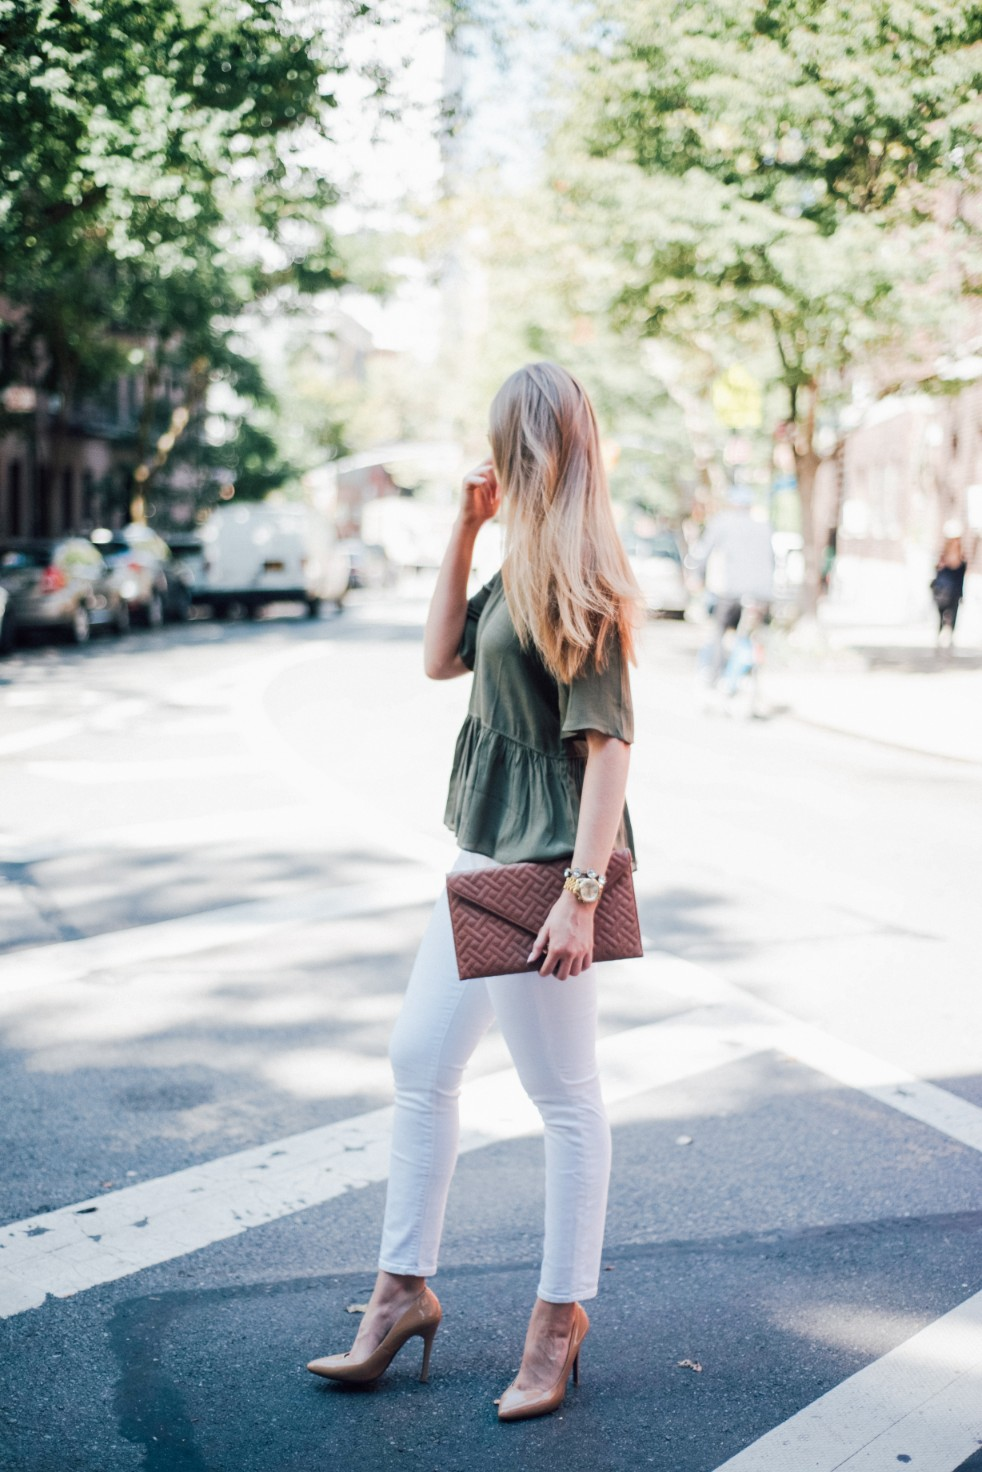 white jeans and peplum top west village fashion new york fashion blogger lauren slade style elixir blog spring outfit ideas 8 - Style Sessions - White Jeans and Peplum Top in the West Village featured by popular US style blogger, Style Elixir